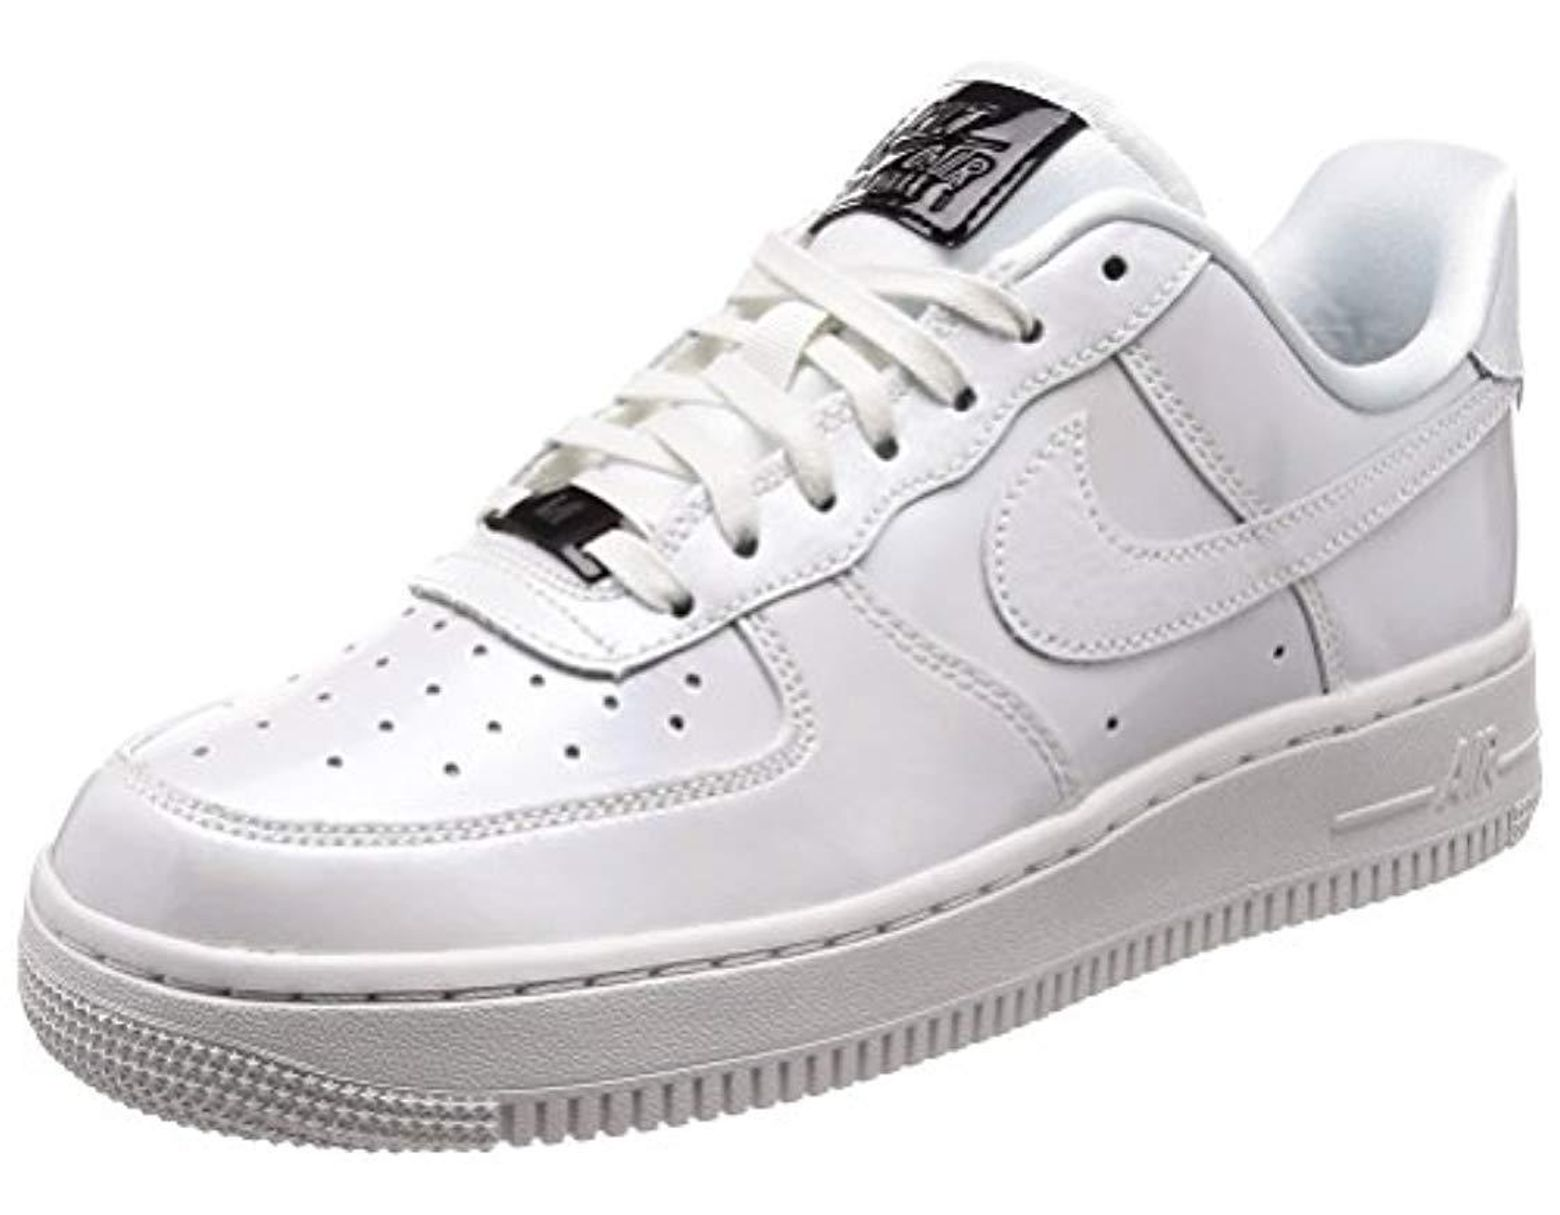 Nike Wmns Air Force 1 07 Lx, Summit Whitesummit White in